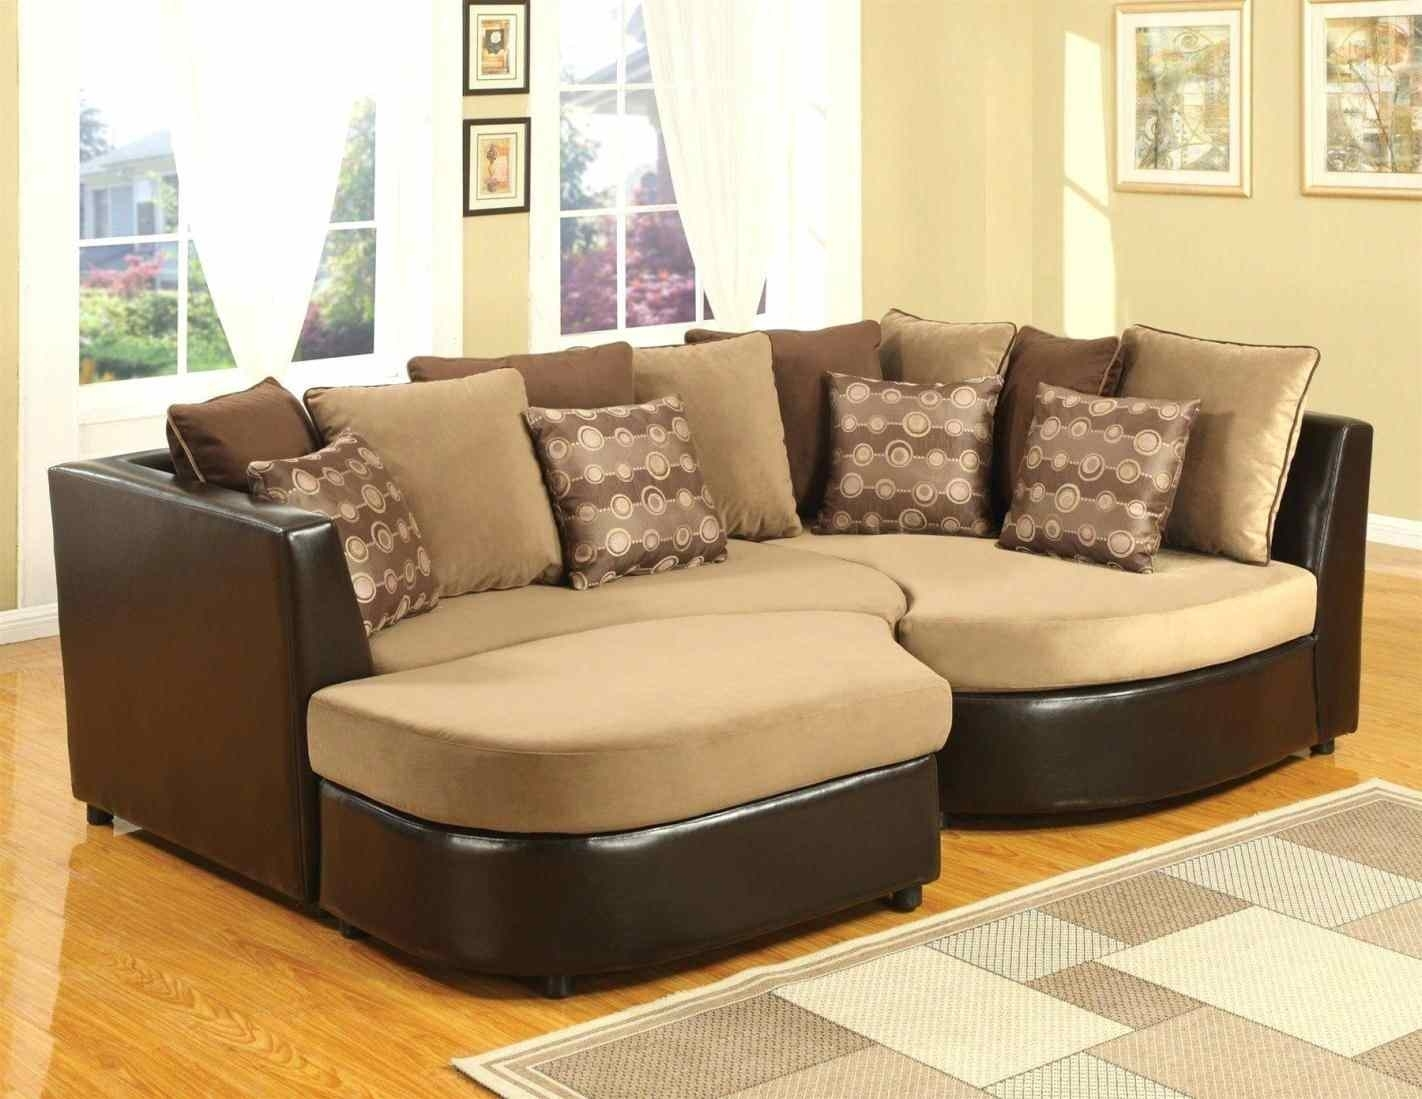 Couch : Furniture Bad Boy Sectional Es Wrap Around Couch Furniture Inside Sectional Sofas At Bad Boy (View 3 of 10)